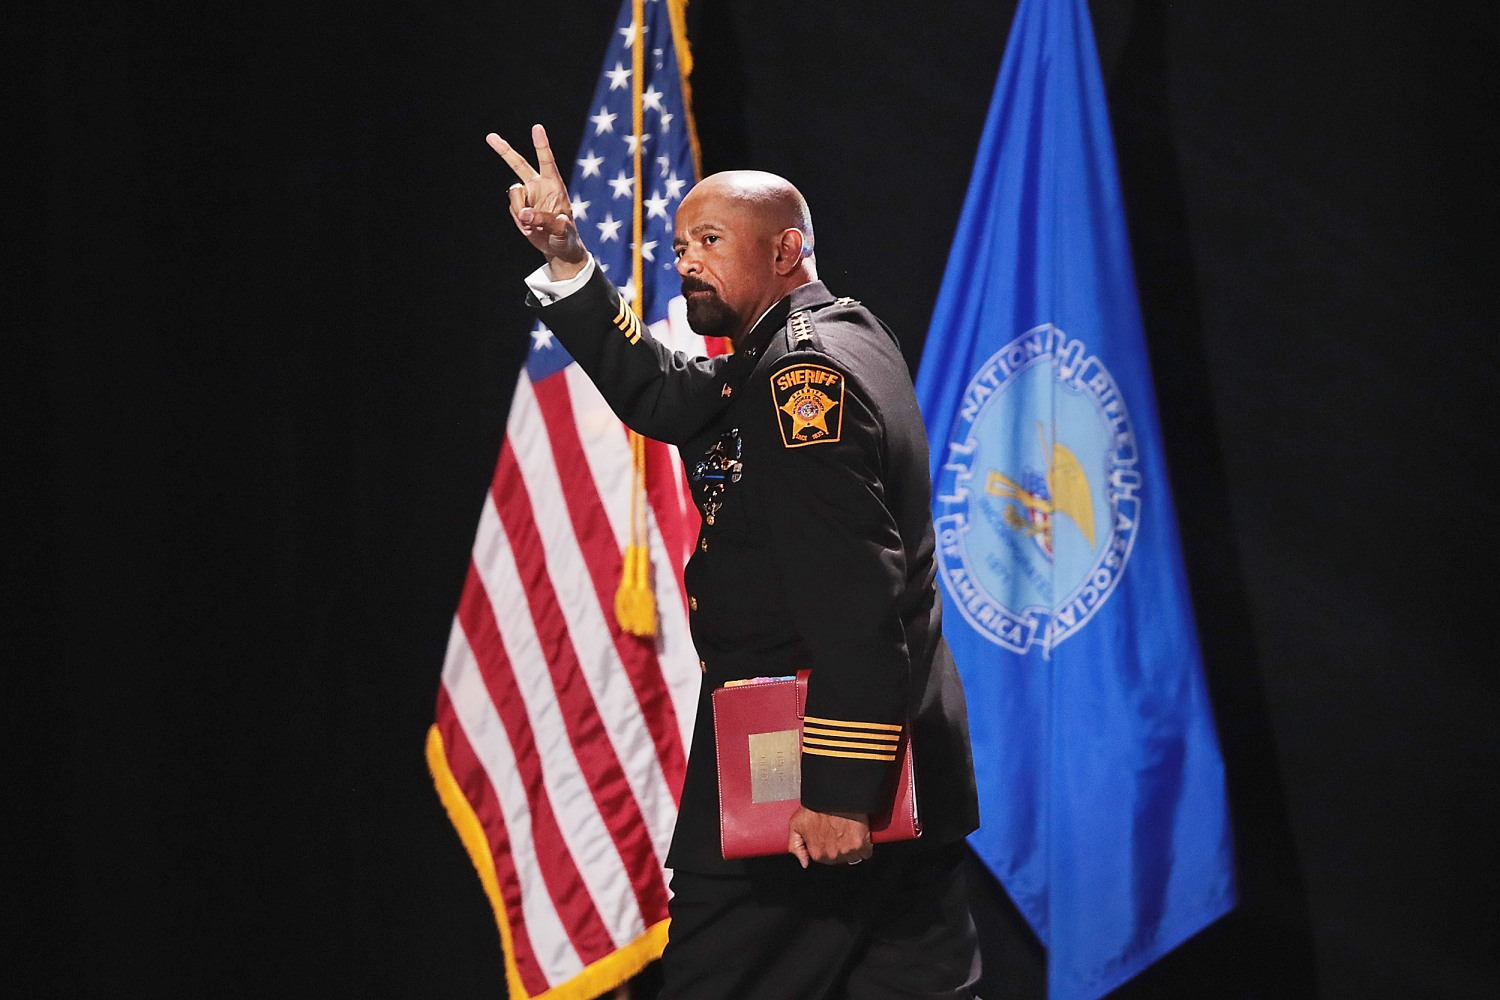 Milwaukee sheriff David Clarke has resigned, county clerk says